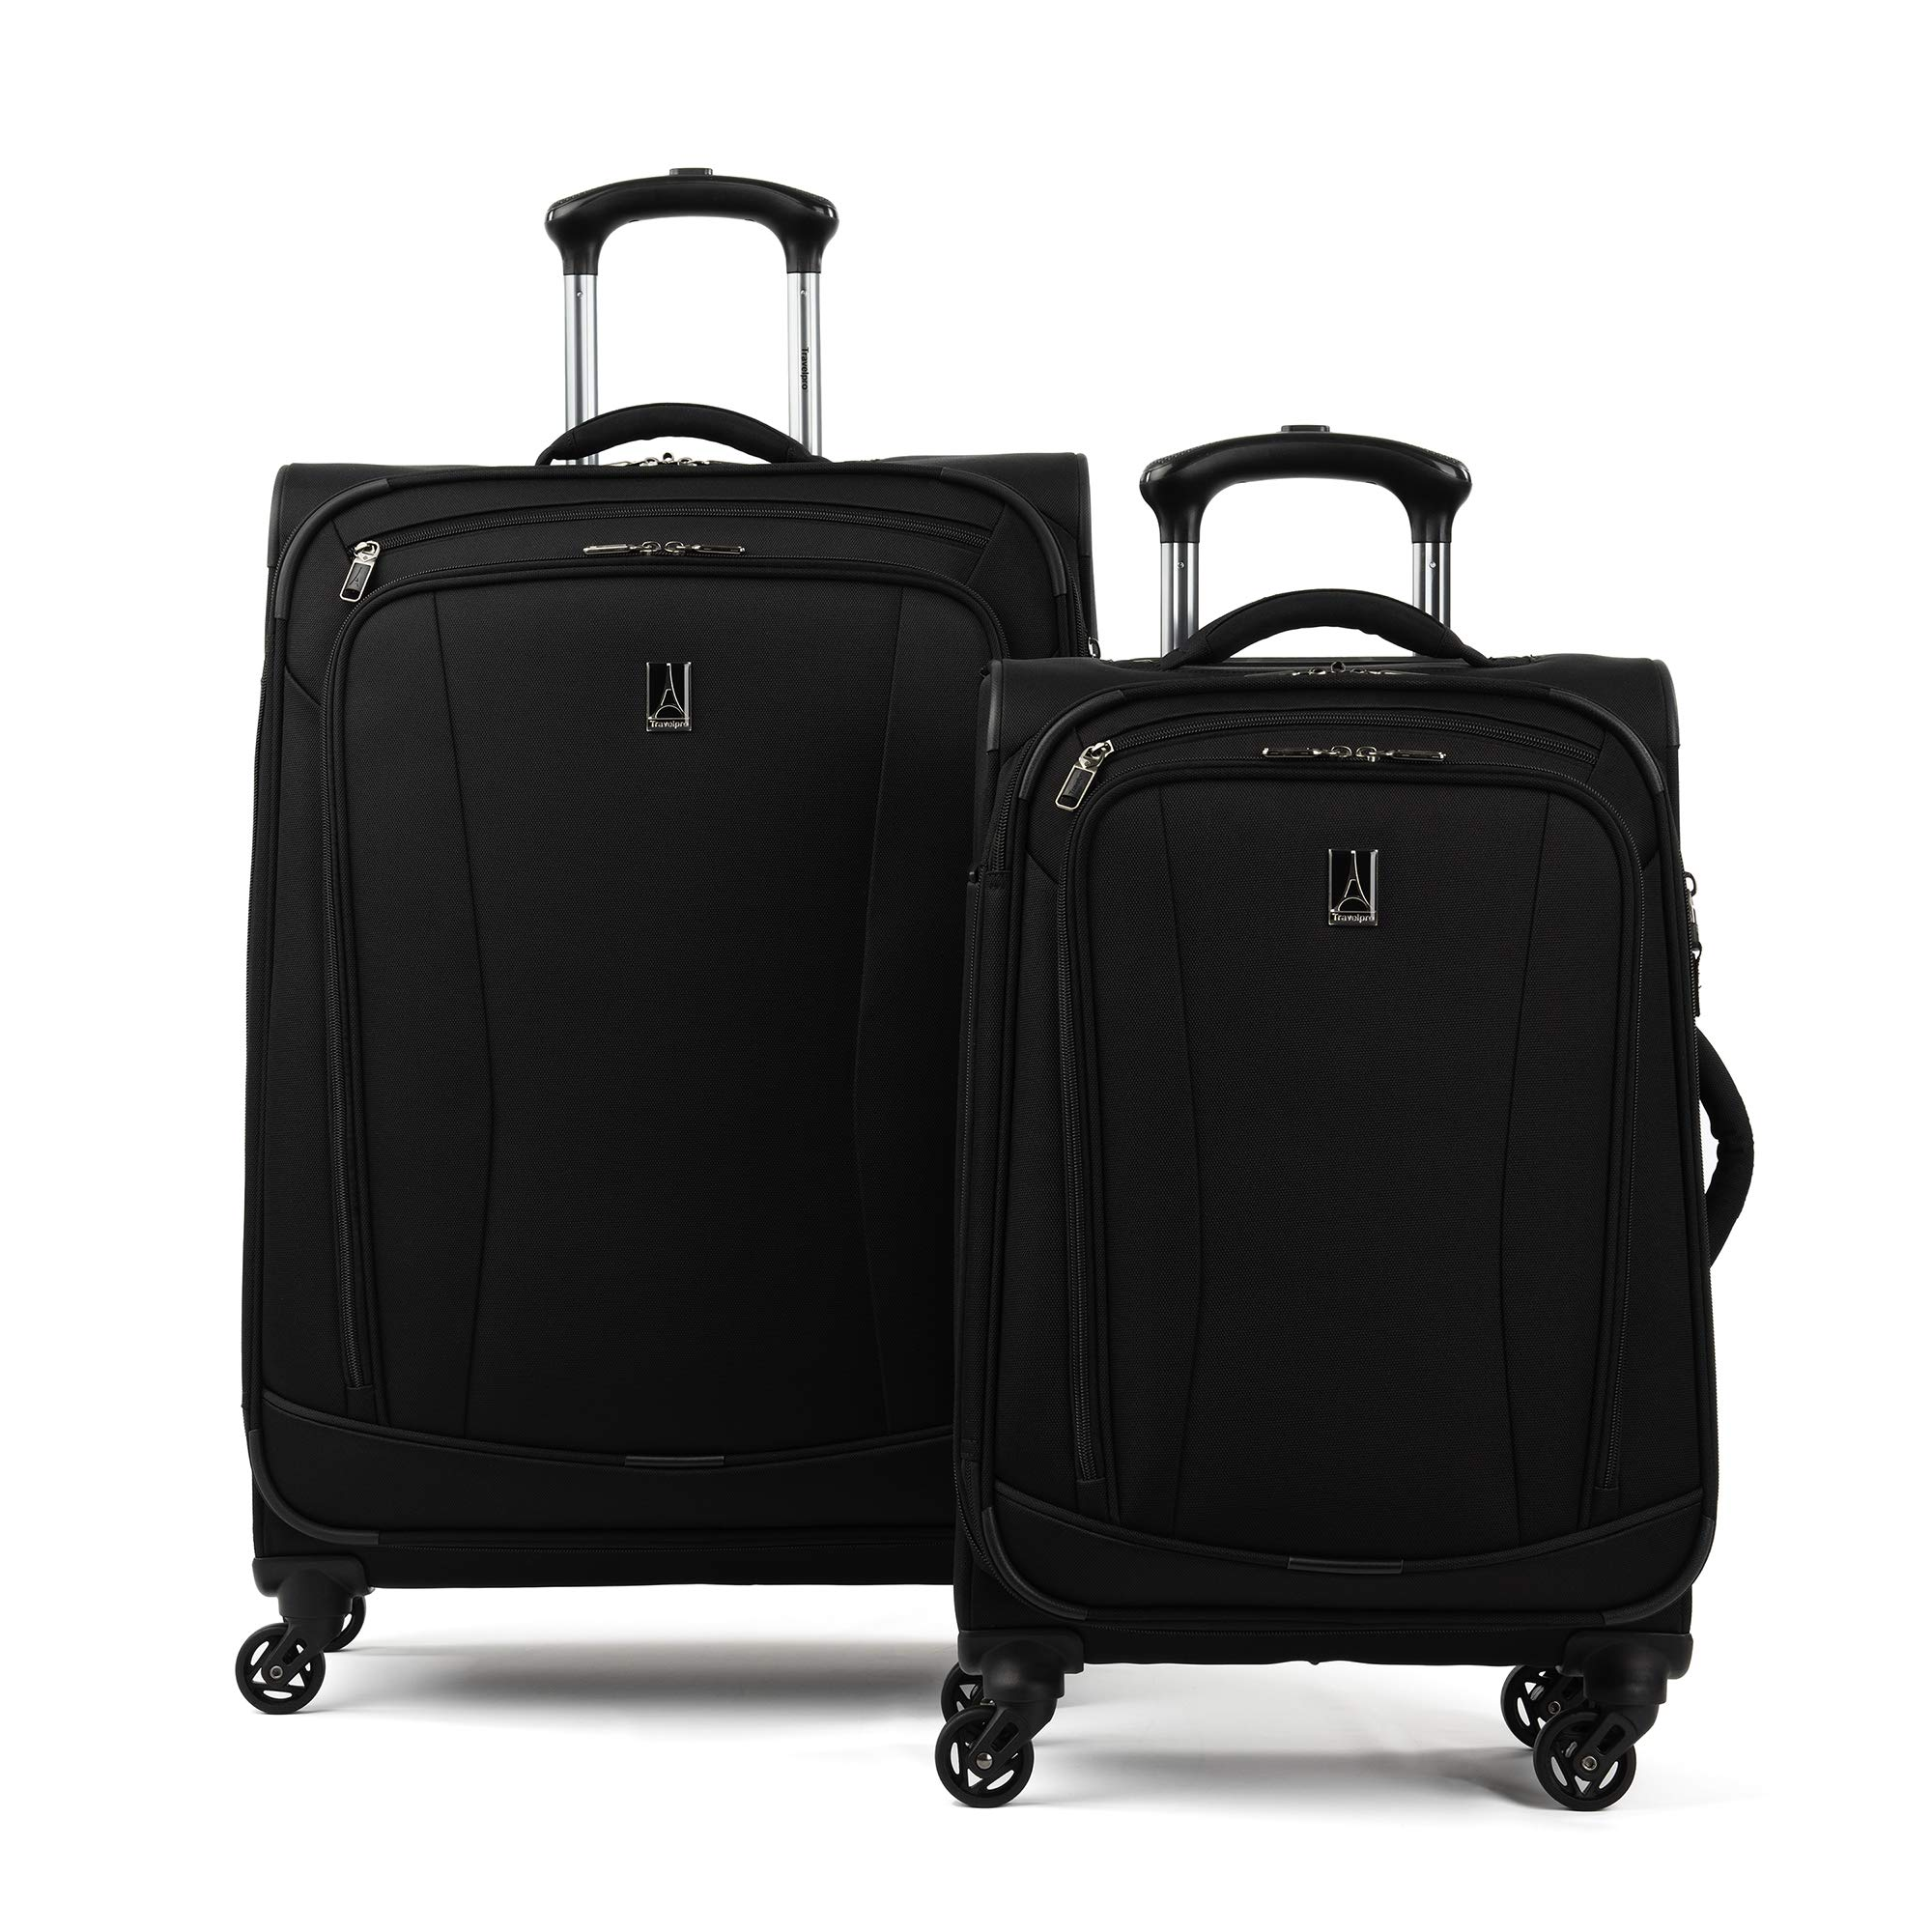 Travelpro TourGo Carry on and Checked Medium Spinner Luggage Set, Black by Travelpro